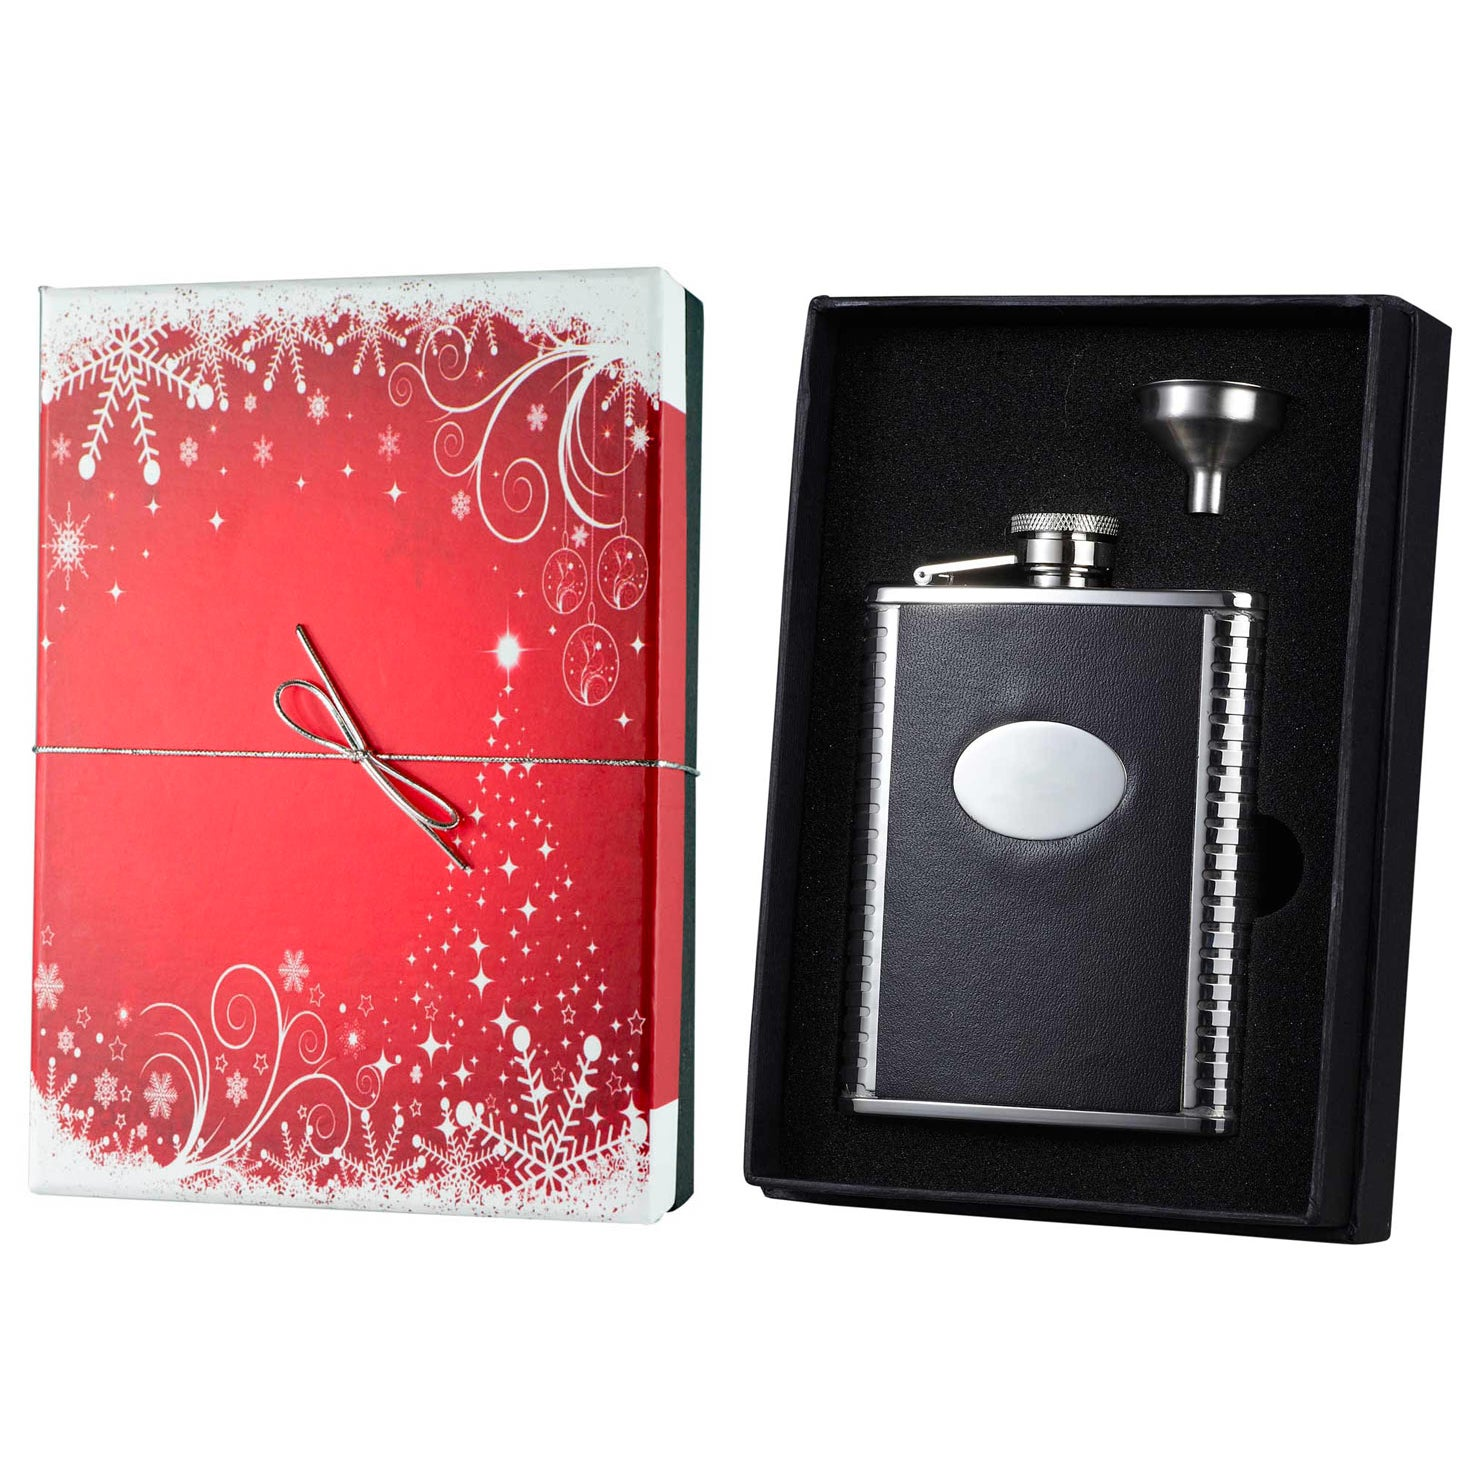 Visol Tux Bonded Leather Holiday Essential Liquor Flask G...